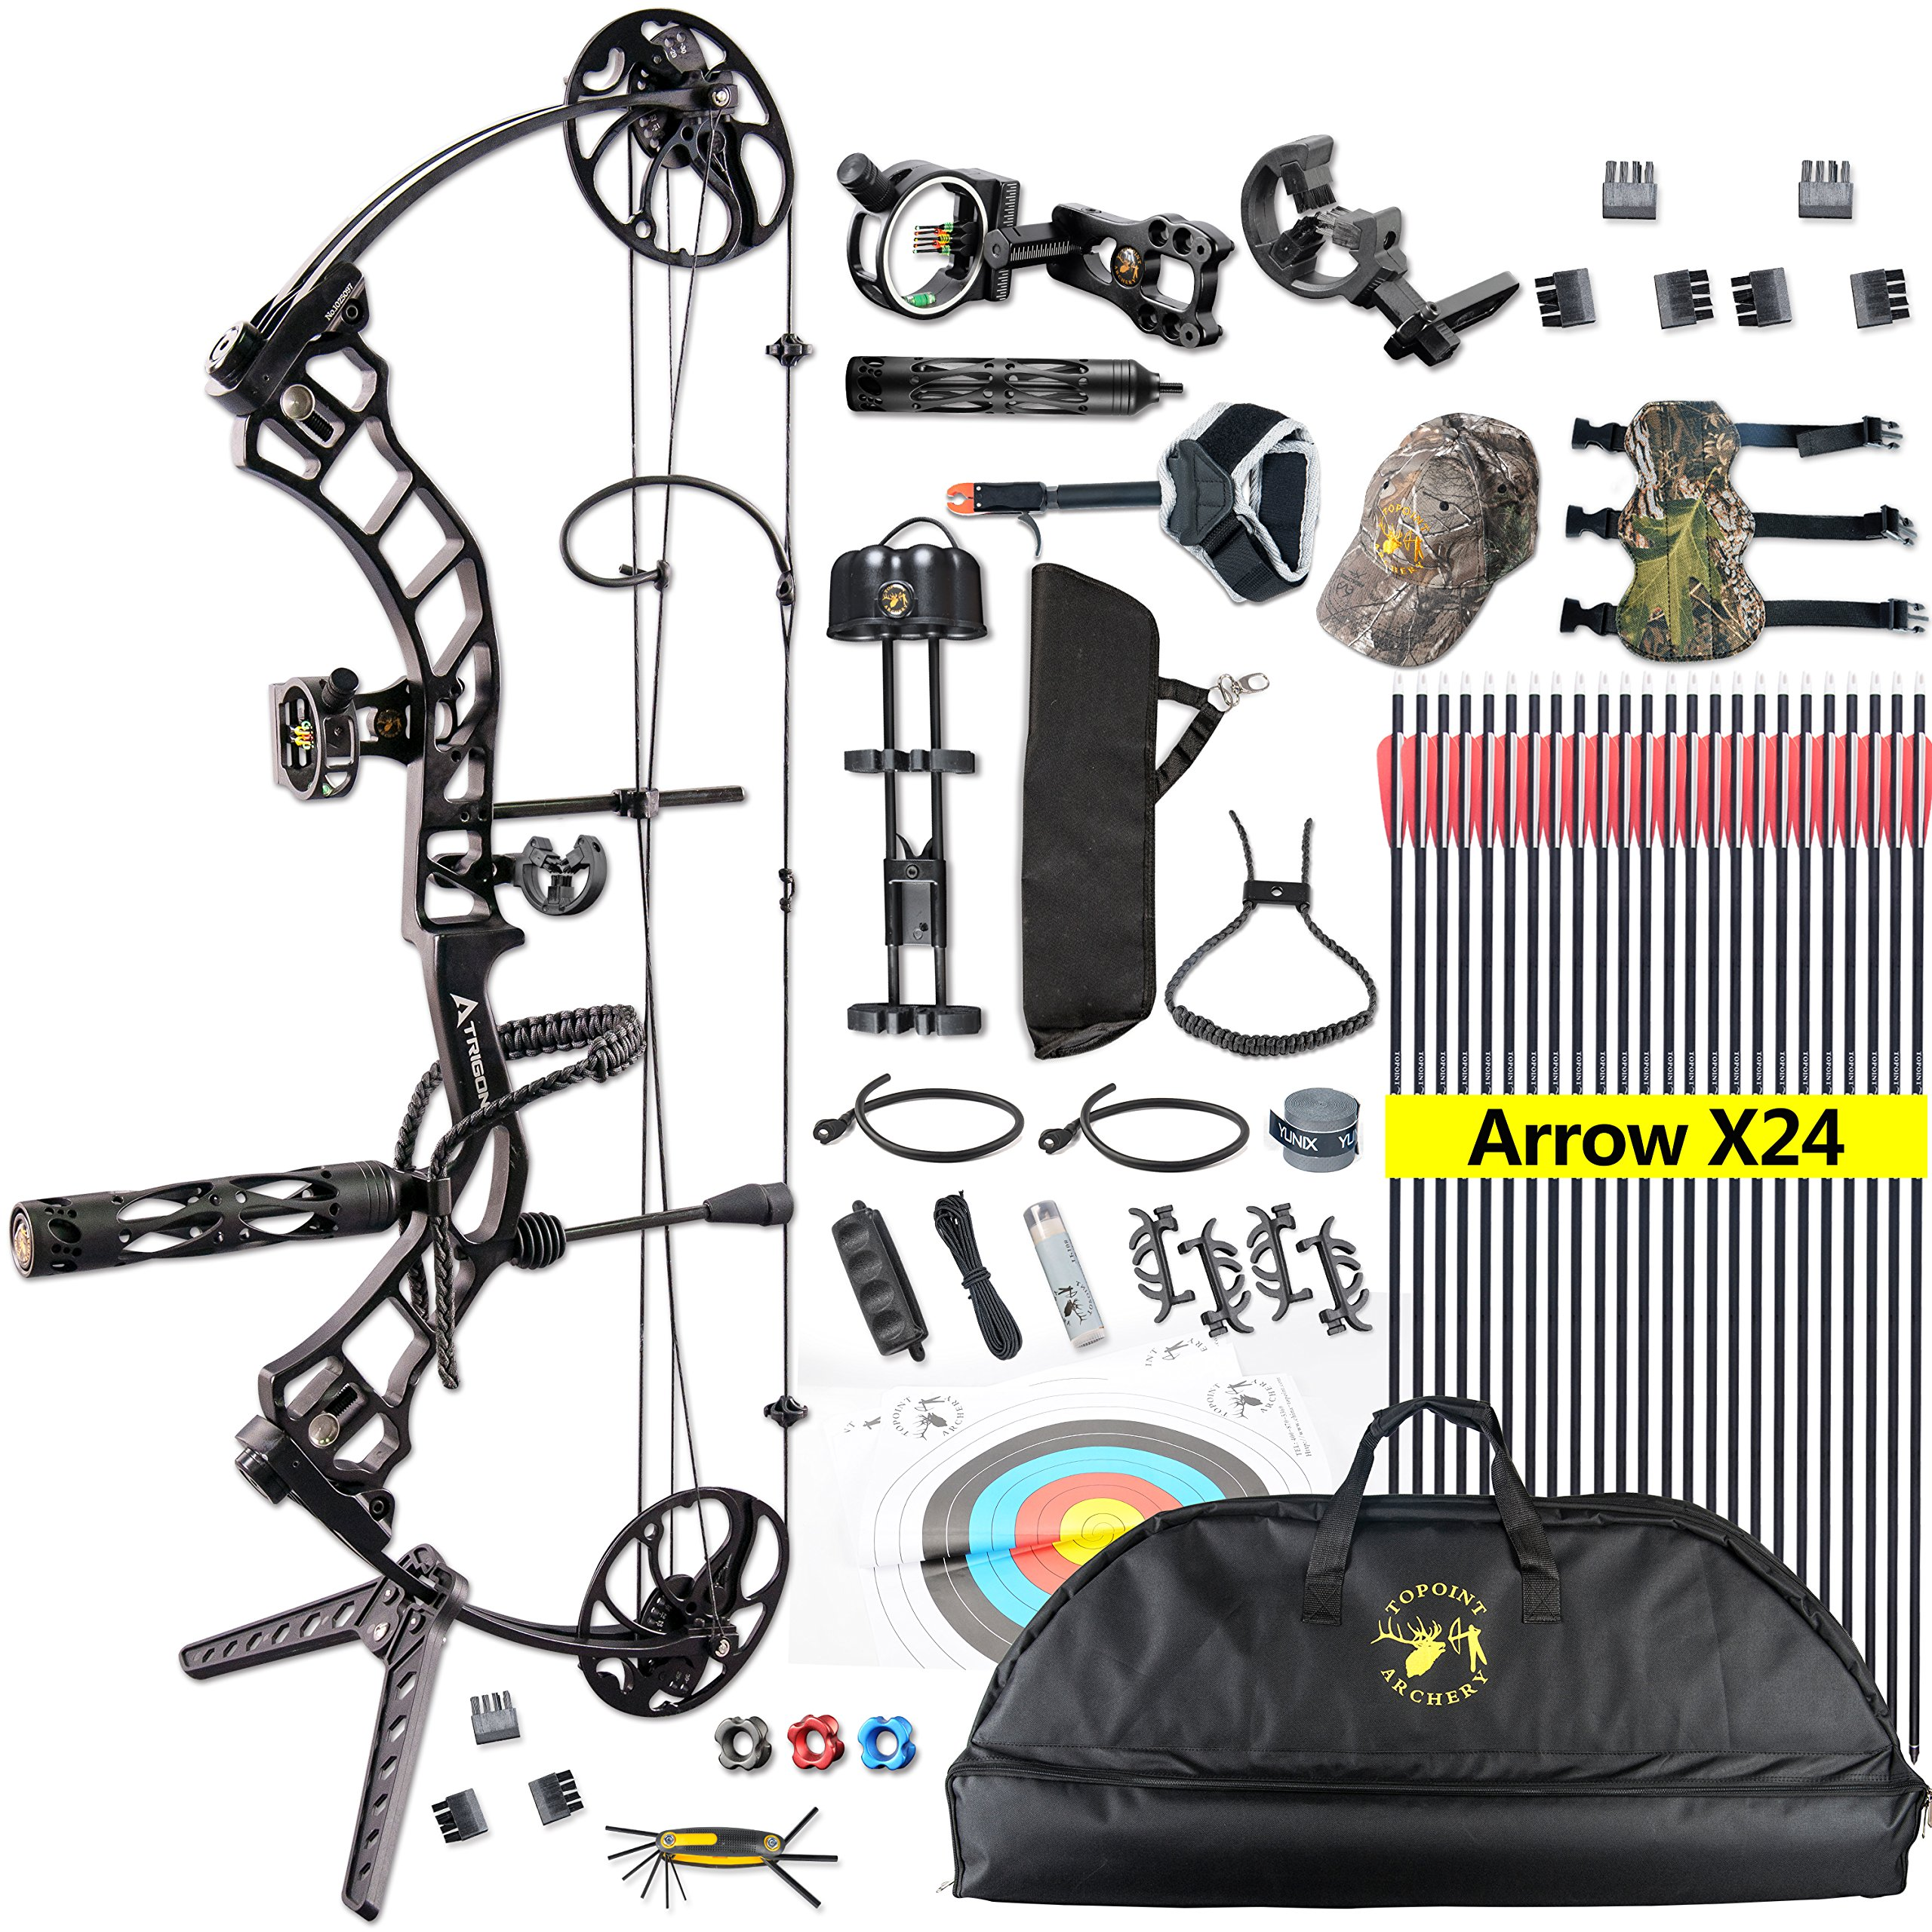 TOPOINT Trigon Compound Bow Full Package,CNC Milling Riser,USA Gordon Composites Limb,BCY String,19''-30'' Draw Length,19-70Lbs Draw Weight,IBO 320fps (Black)